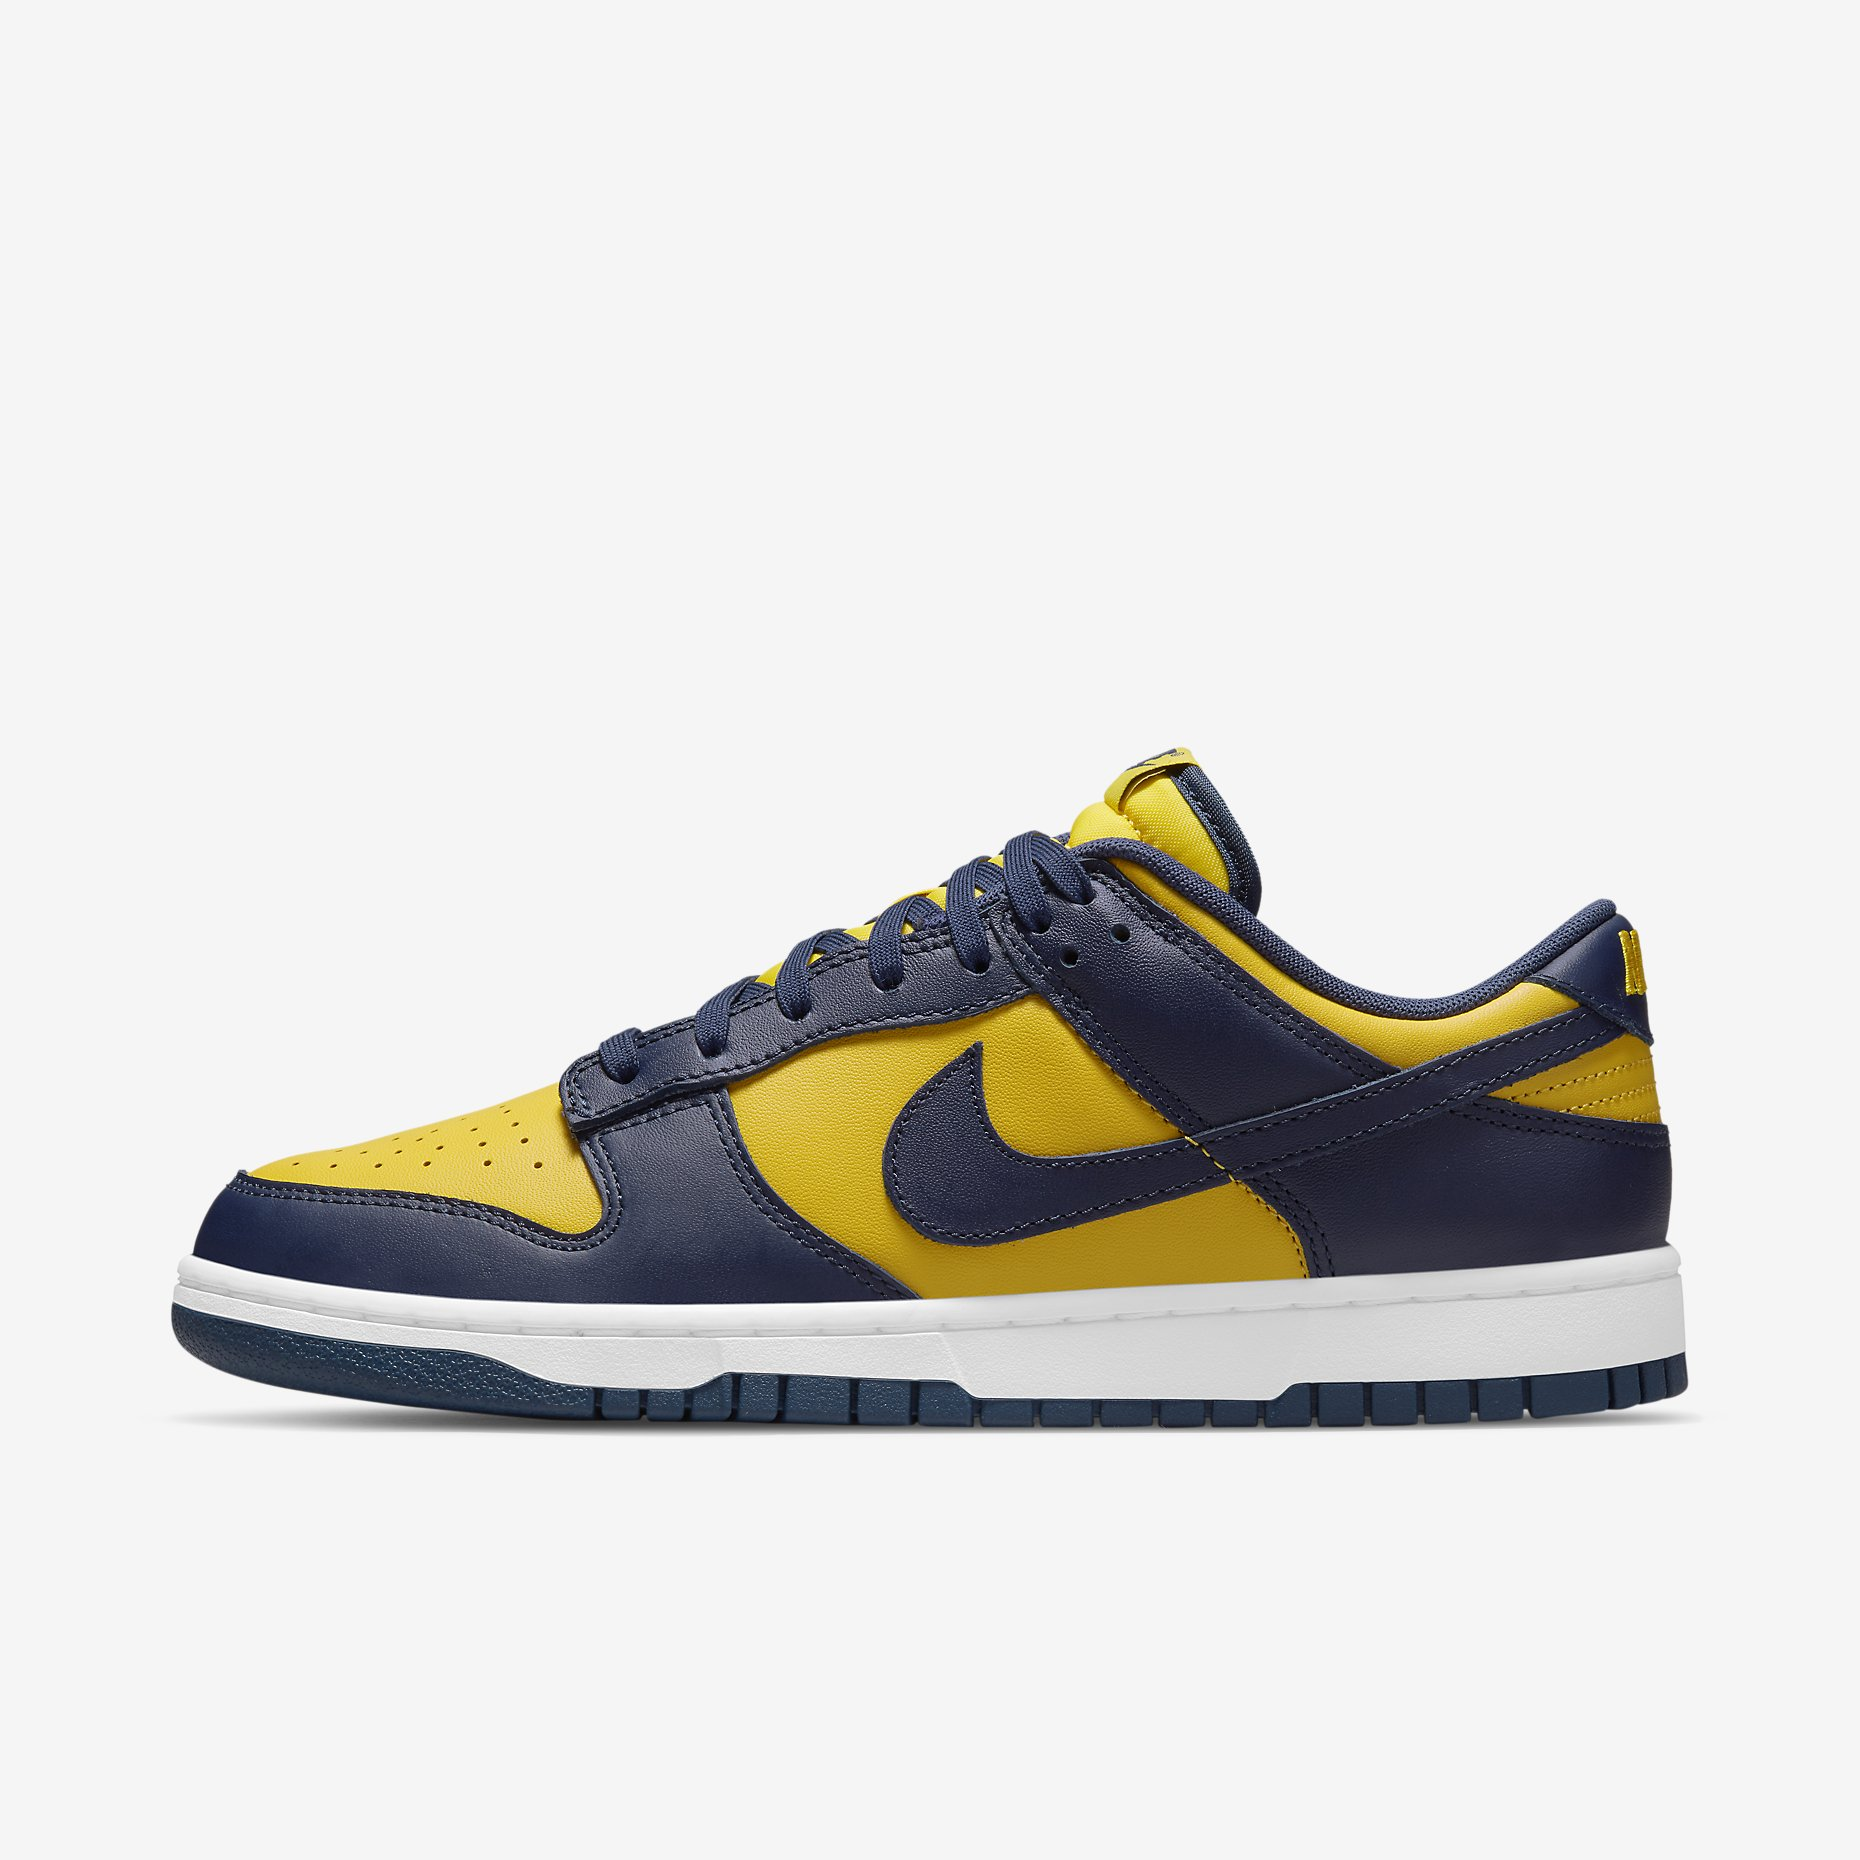 Nike Dunk Low 'Varsity Maize/Midnight Navy'}